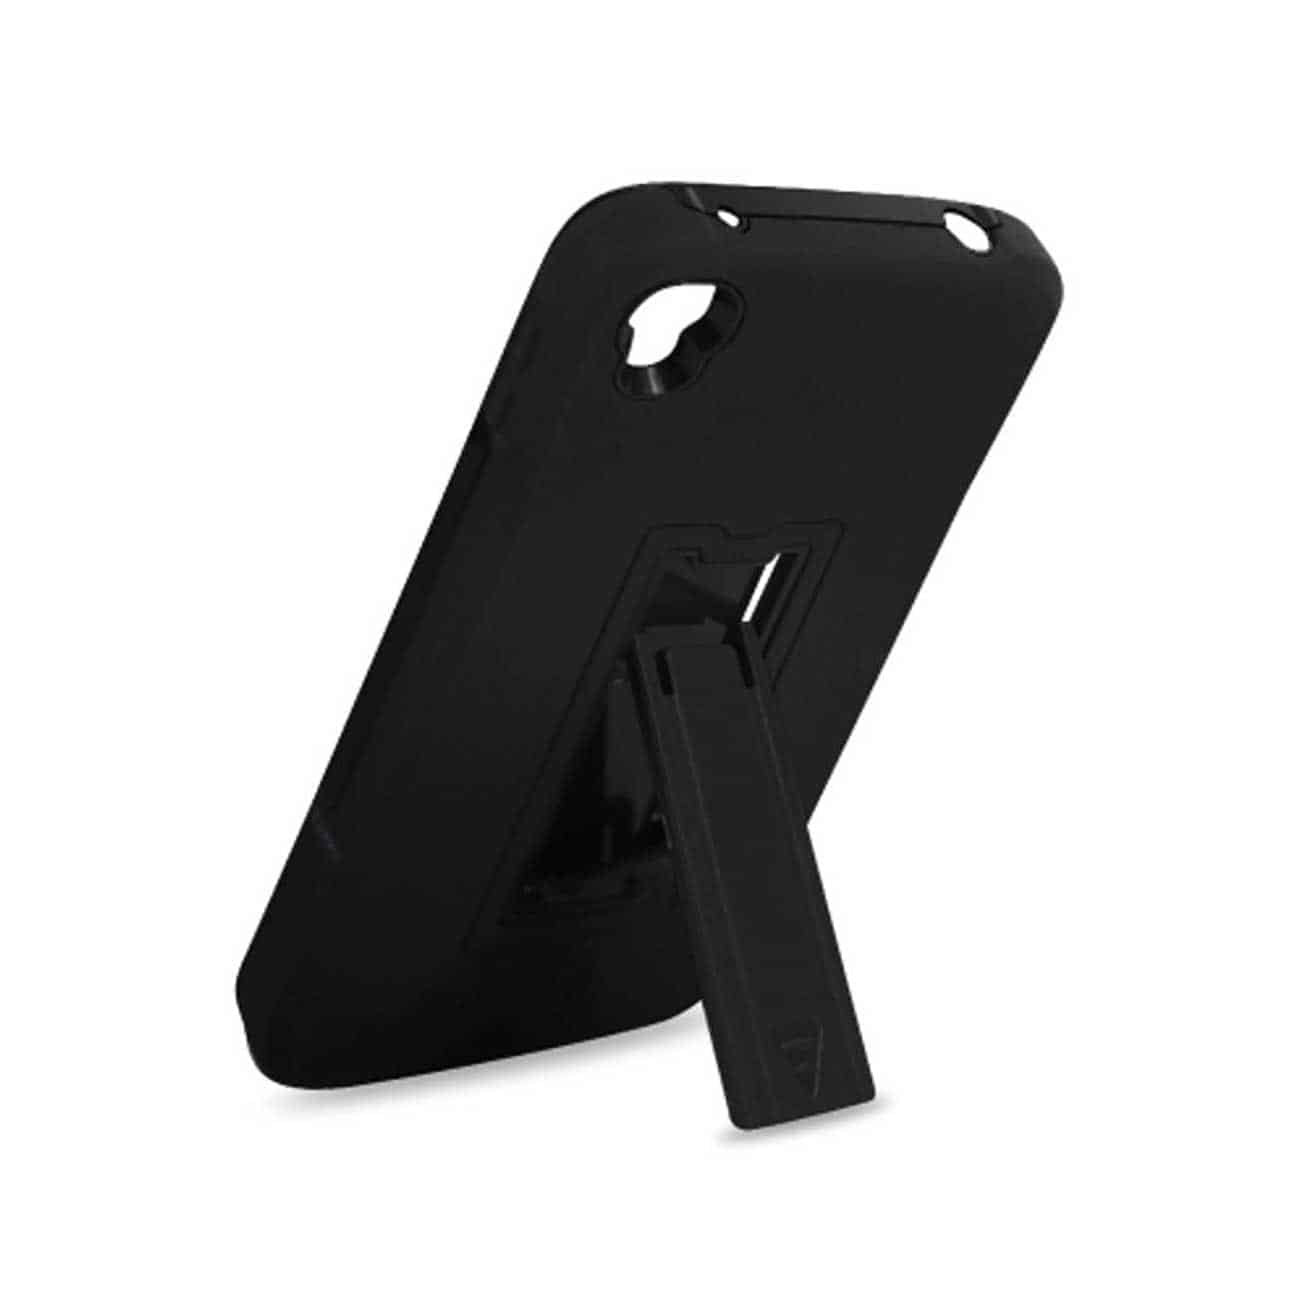 ALCATEL ONE TOUCH IDOL 3 HYBRID HEAVY DUTY 3 PIECES CASE WITH KICKSTAND IN BLACK